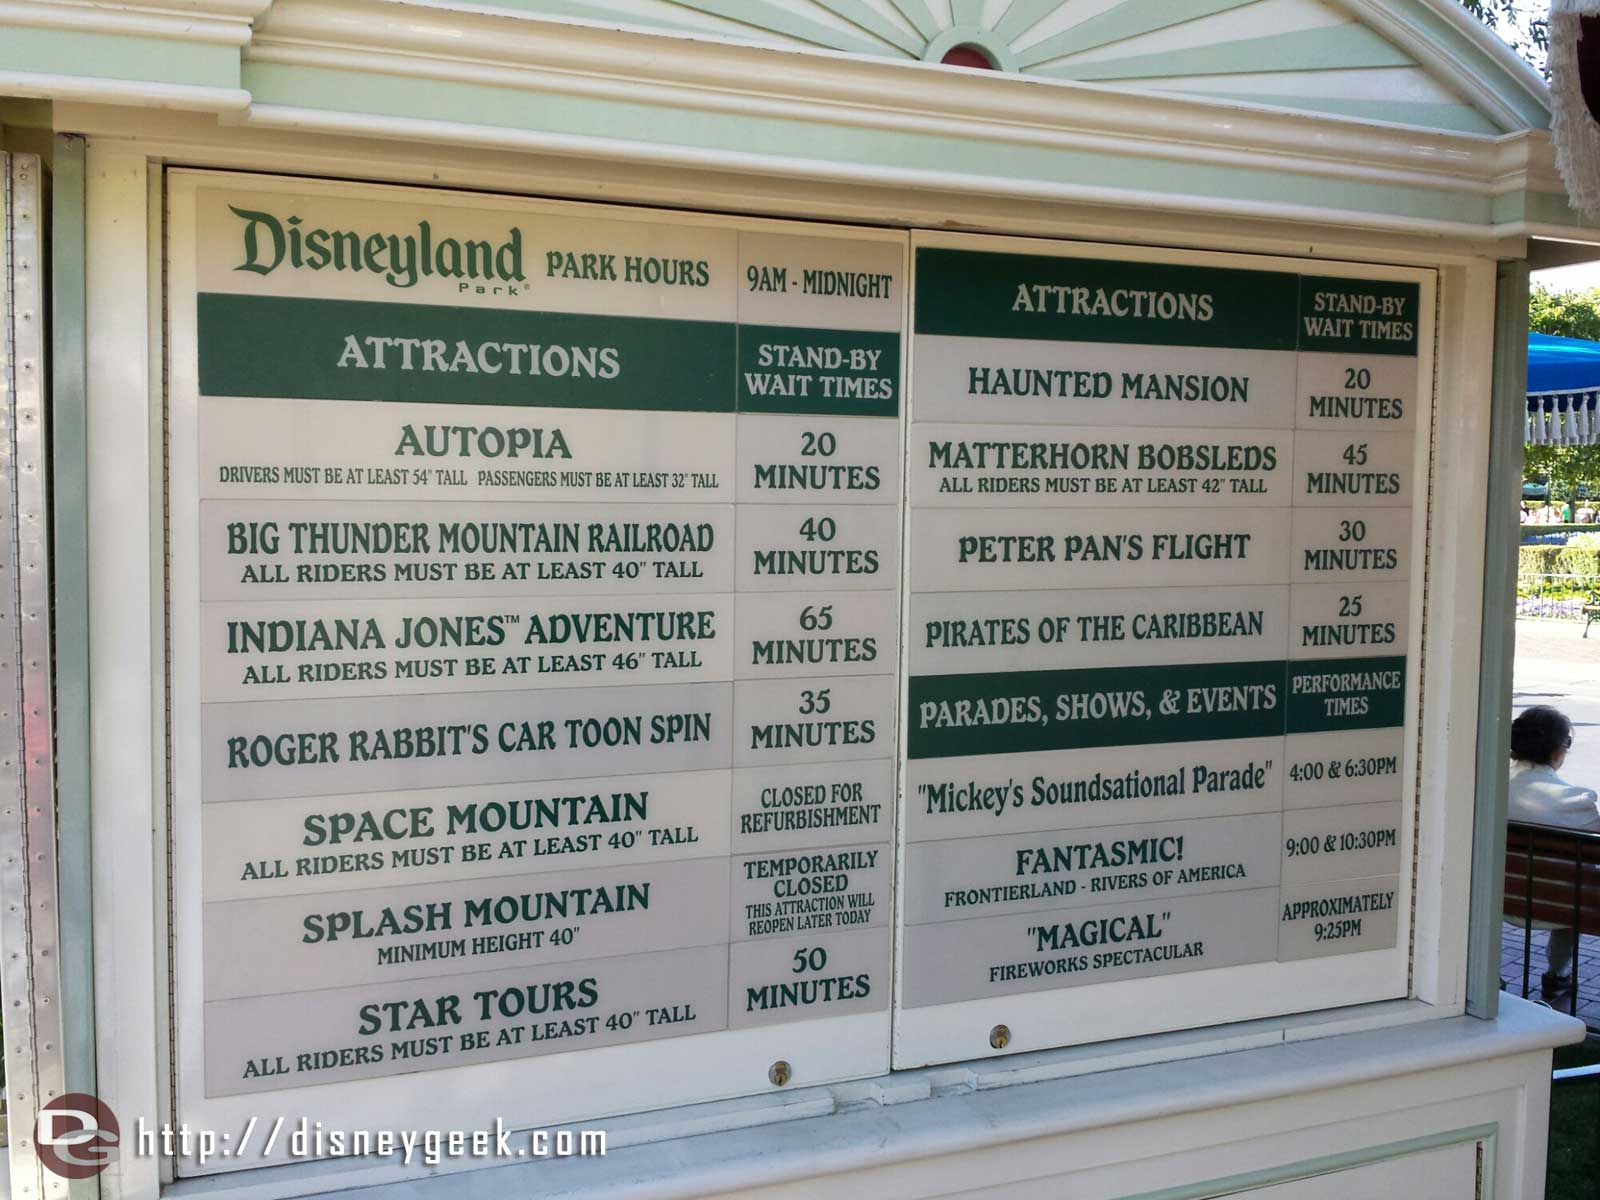 #Disneyland waits as of 5:45pm